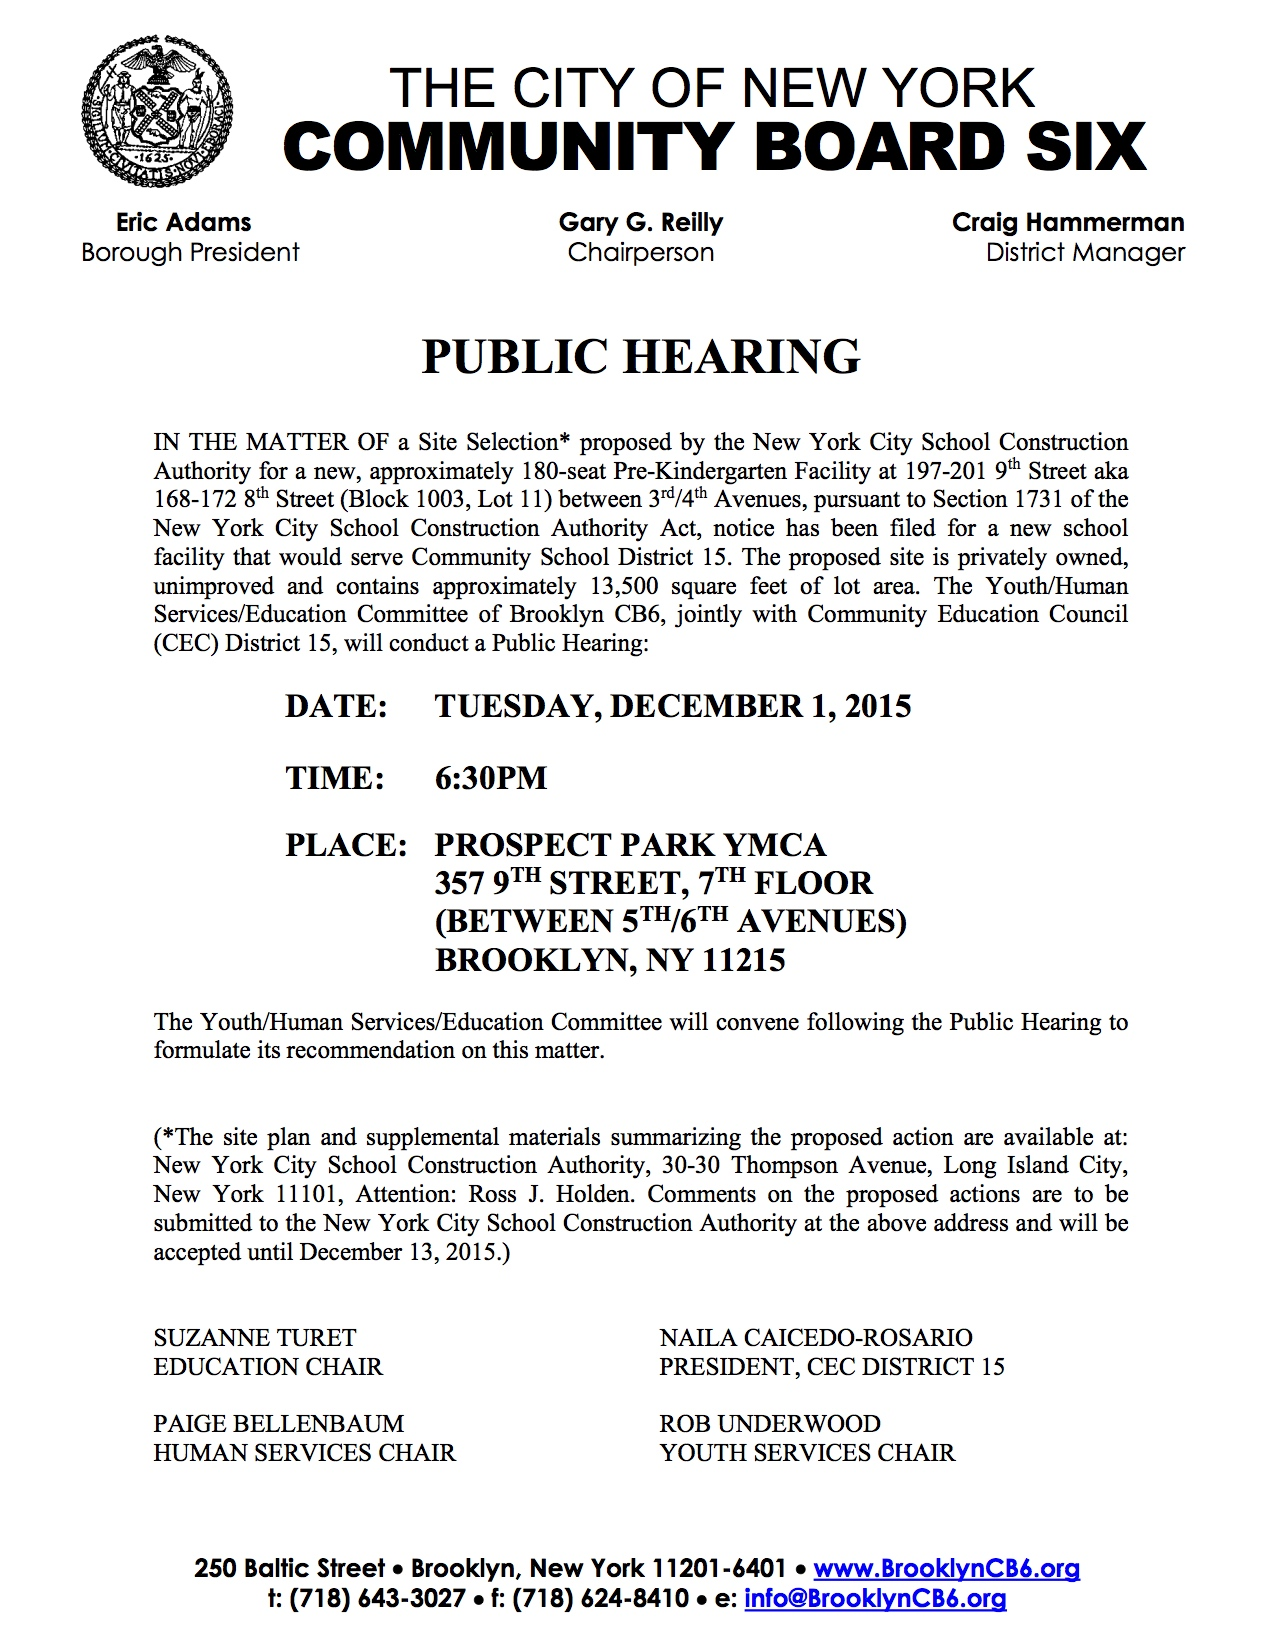 2015-12-01 Public Hearing Notice 201 9th Street